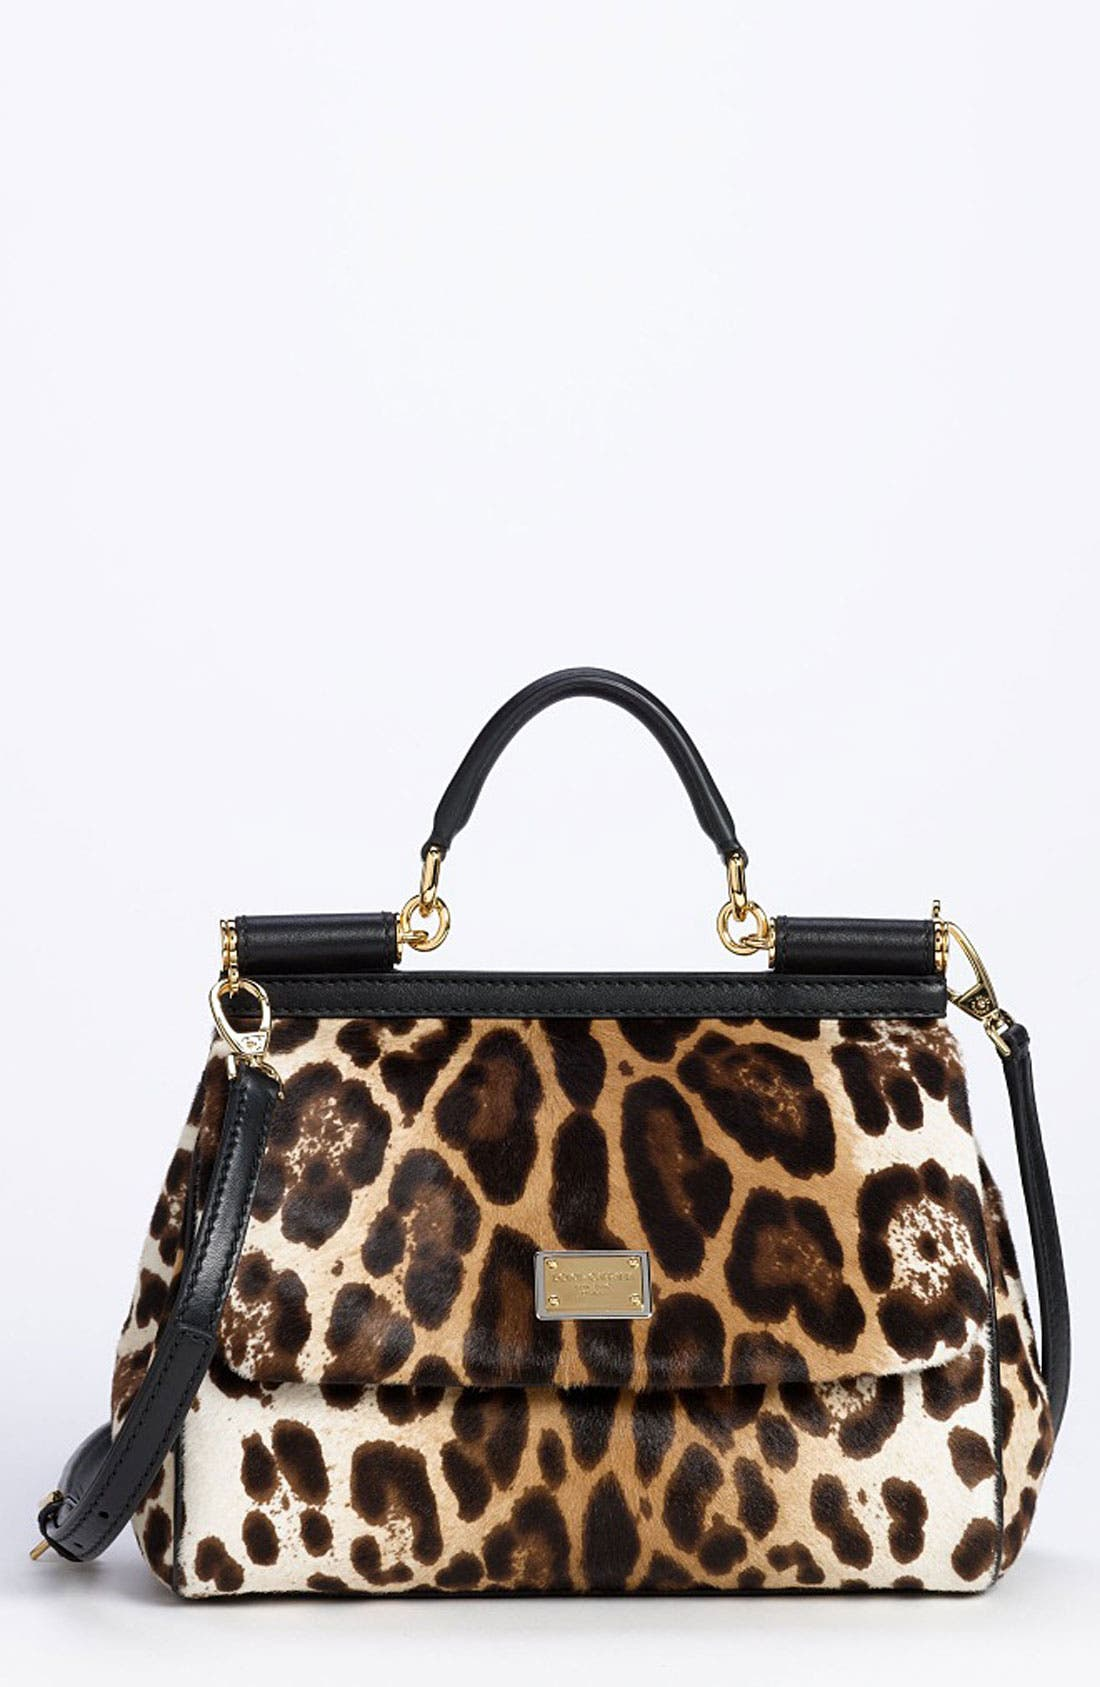 Alternate Image 1 Selected - Dolce&Gabbana 'Miss Sicily' Genuine Calf Hair Satchel